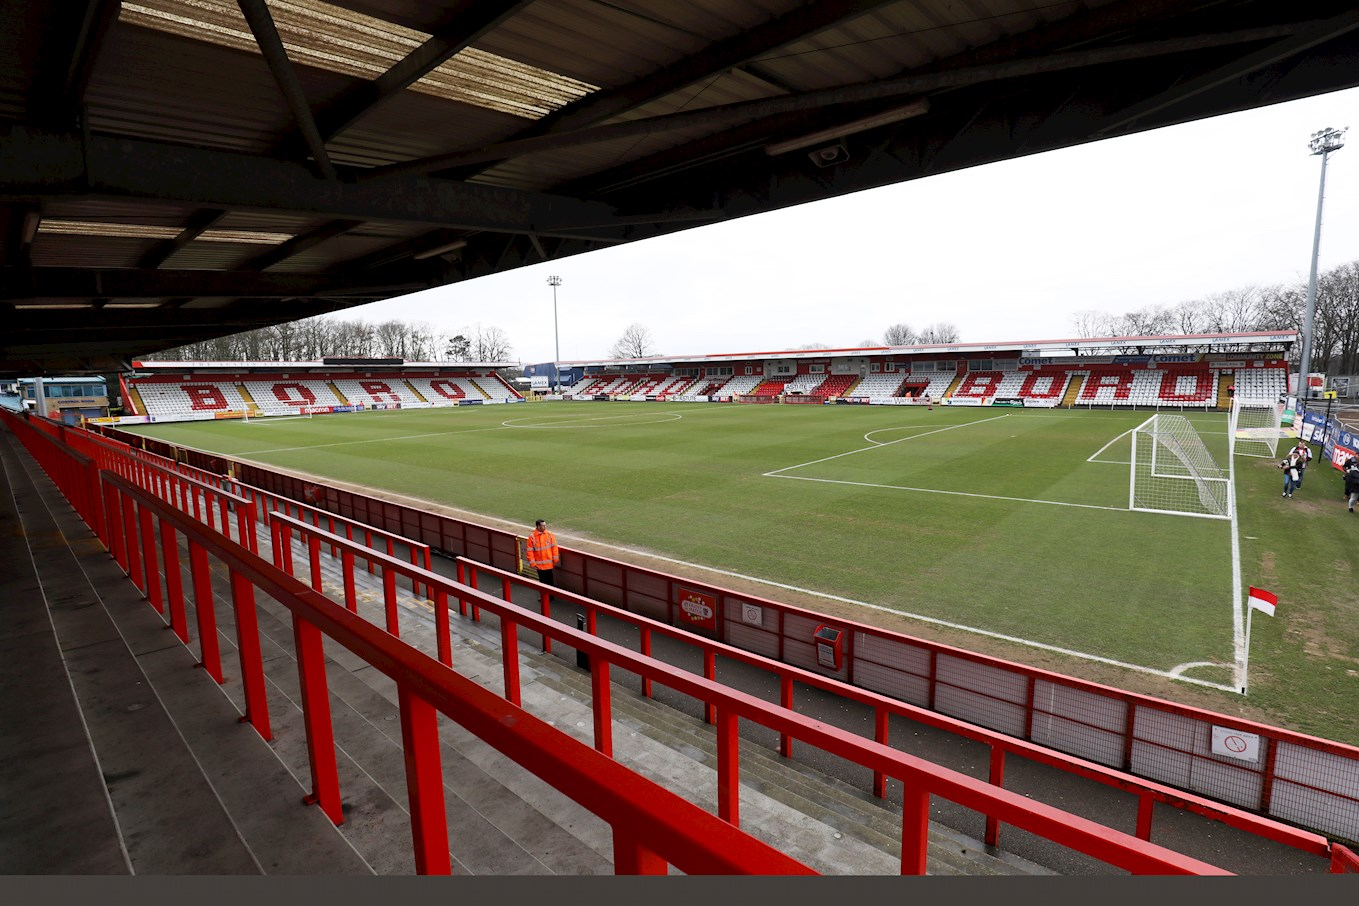 Stevenage - Broadhall Way 1.jpg